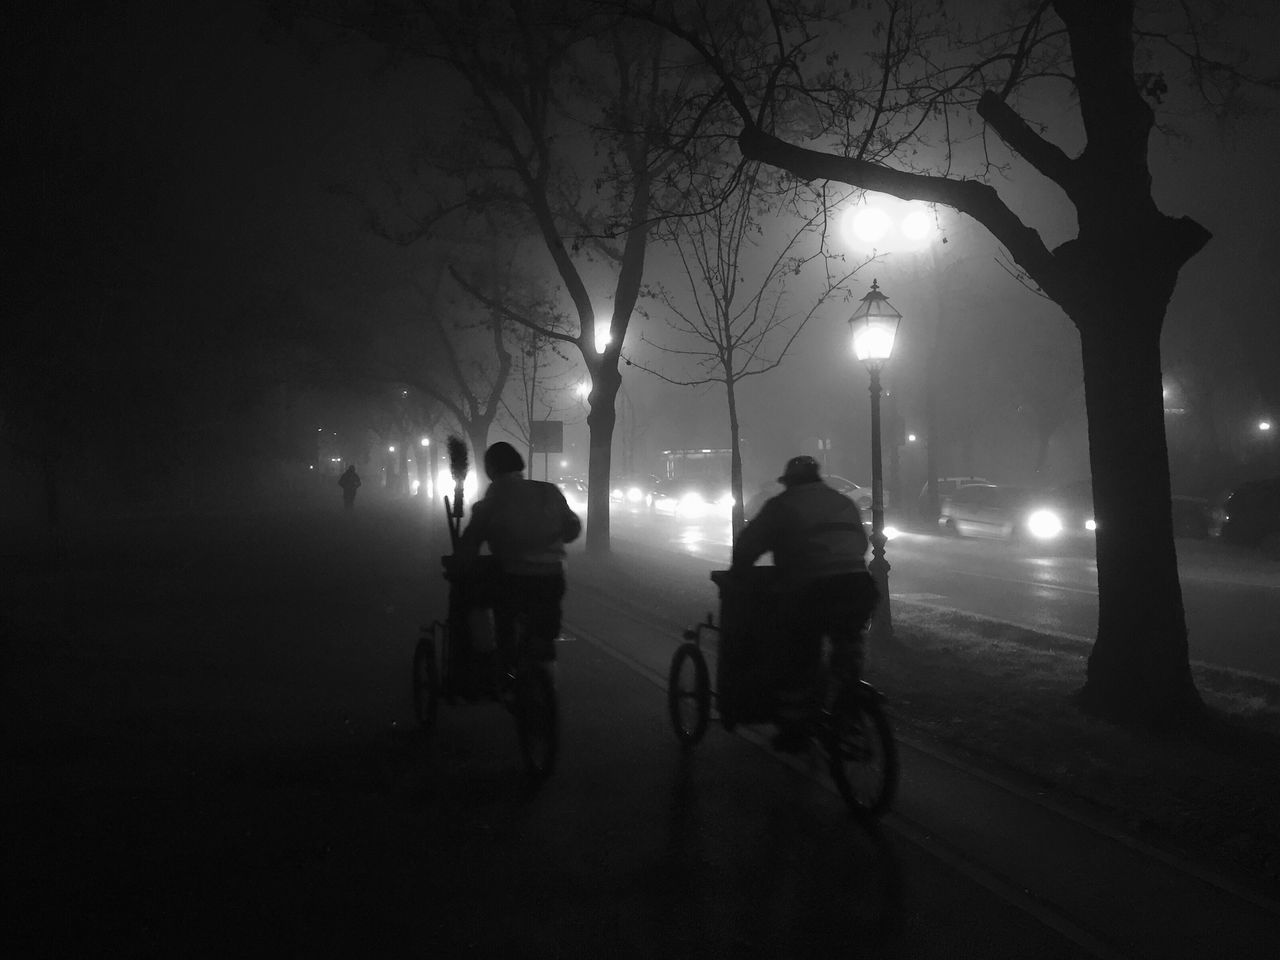 """Garbagemen driving through extensive """"Carpenter style"""" night fog in Zagreb, Marulicev square, Croatia, Dec 9, 2016. Marulicev Square Zagreb Croatia Fog Foggy Night Fog Night Garbageman Waste Collector Bicycle Night Lights Transportation Silhouette Bare Tree Carpenter Dramatic Visibility The City Light"""